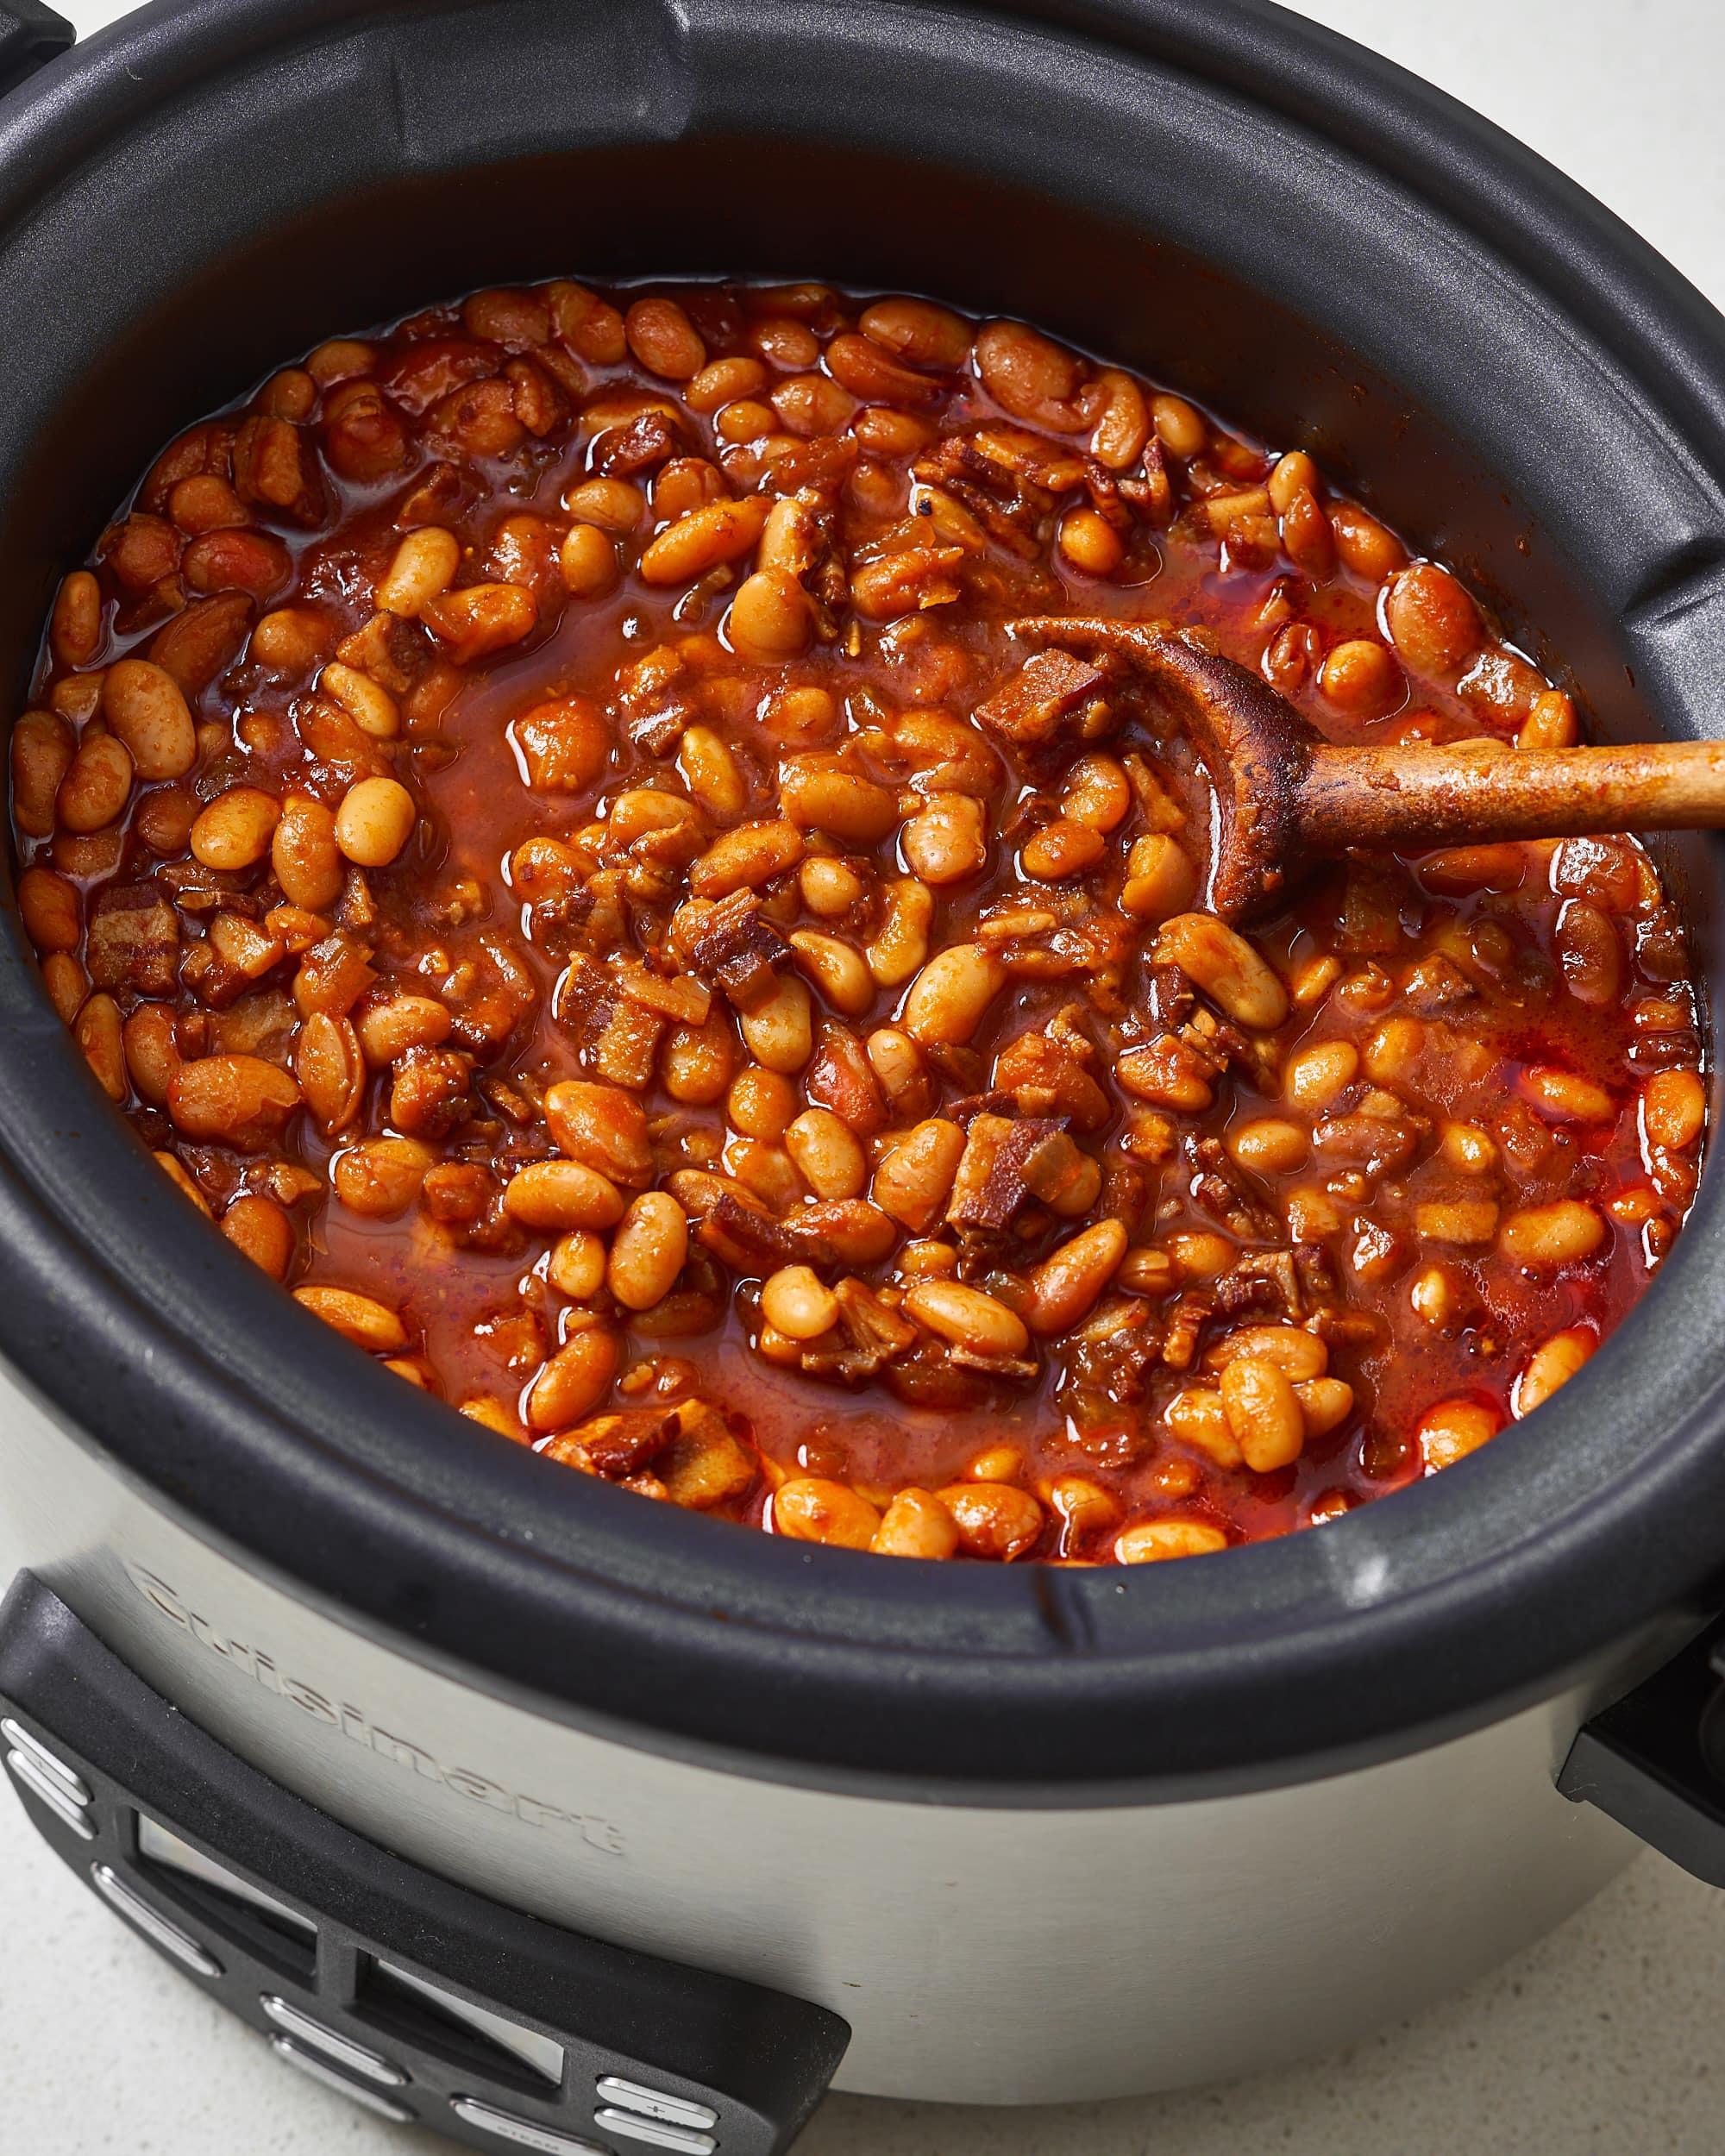 The Best Baked Beans Are Made in Your Slow Cooker